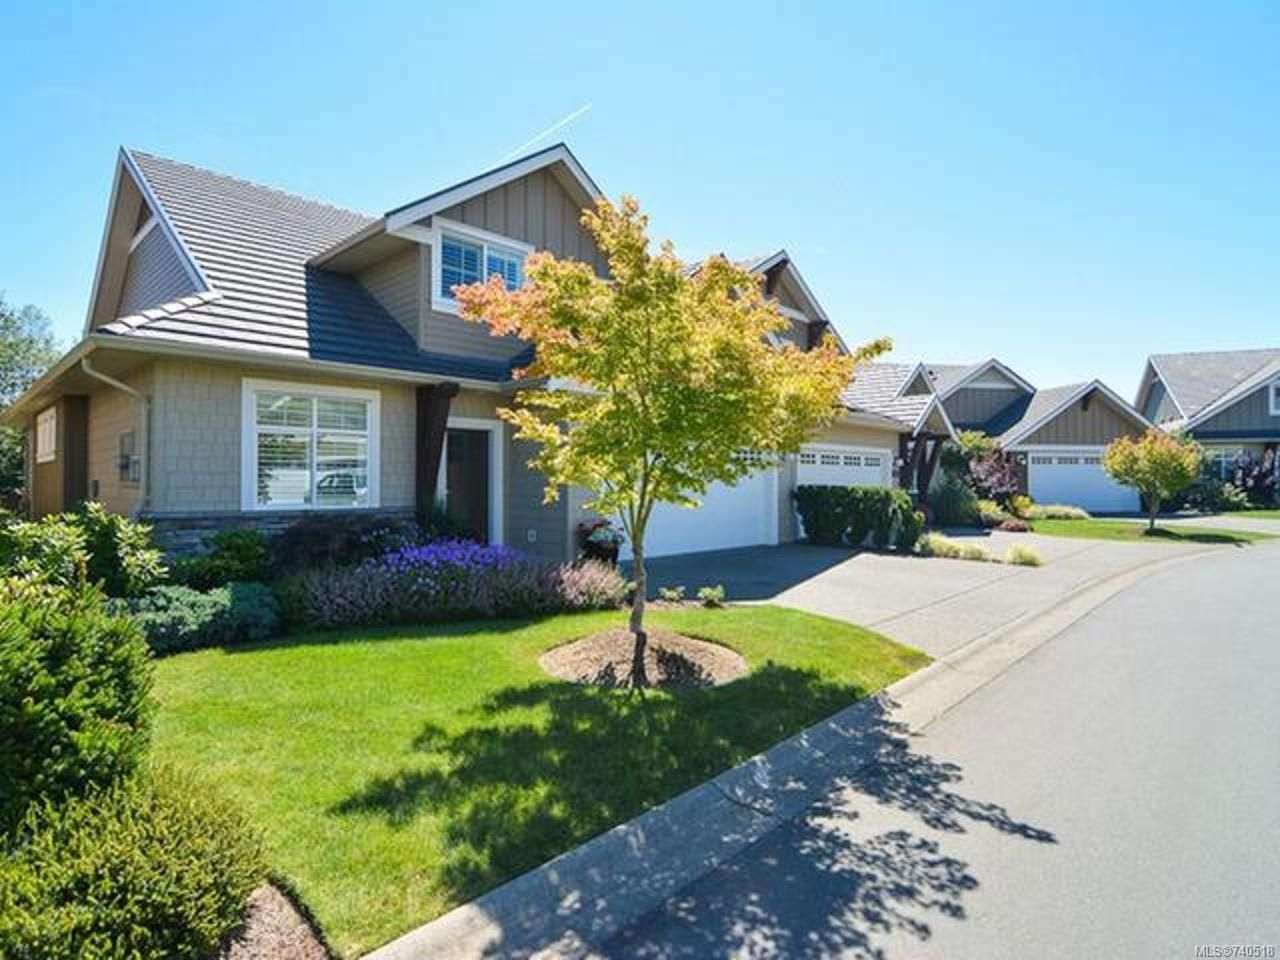 Main Photo: 105 1055 Crown Isle Dr in COURTENAY: CV Crown Isle Row/Townhouse for sale (Comox Valley)  : MLS®# 740518